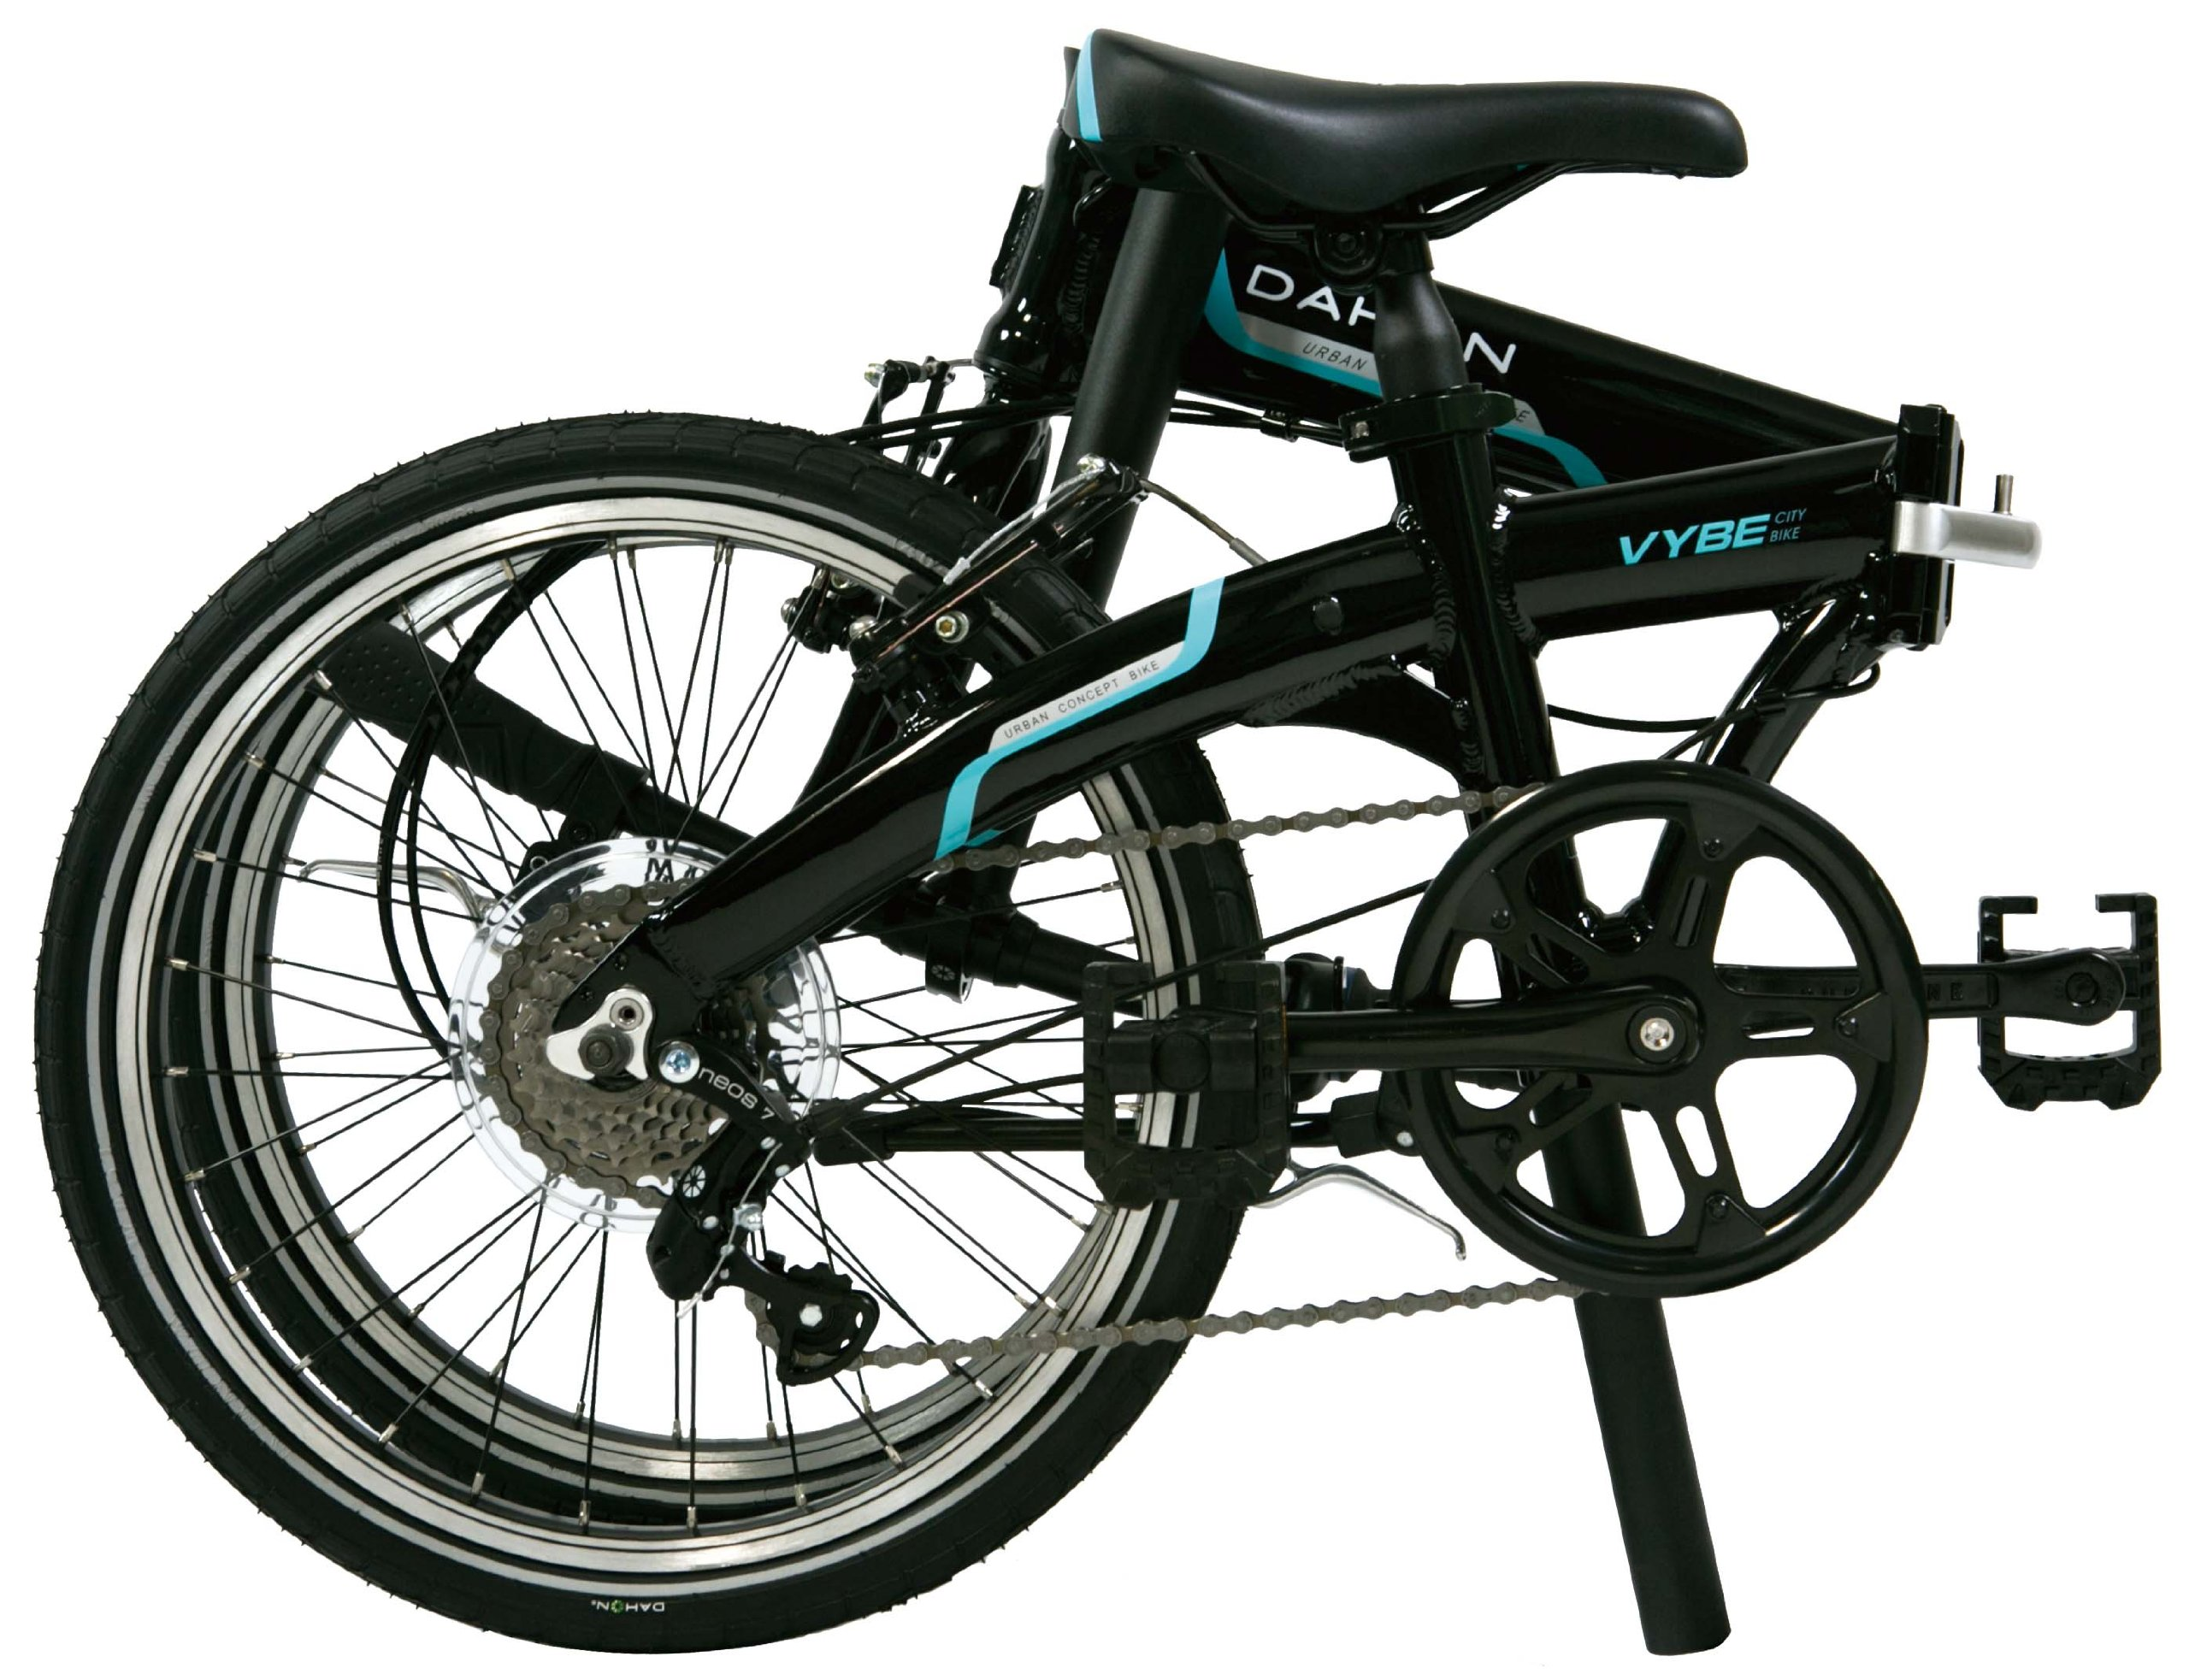 Dahon Vybe D7 Folding Bike Obsidian with Fenders by Dahon (Image #2)